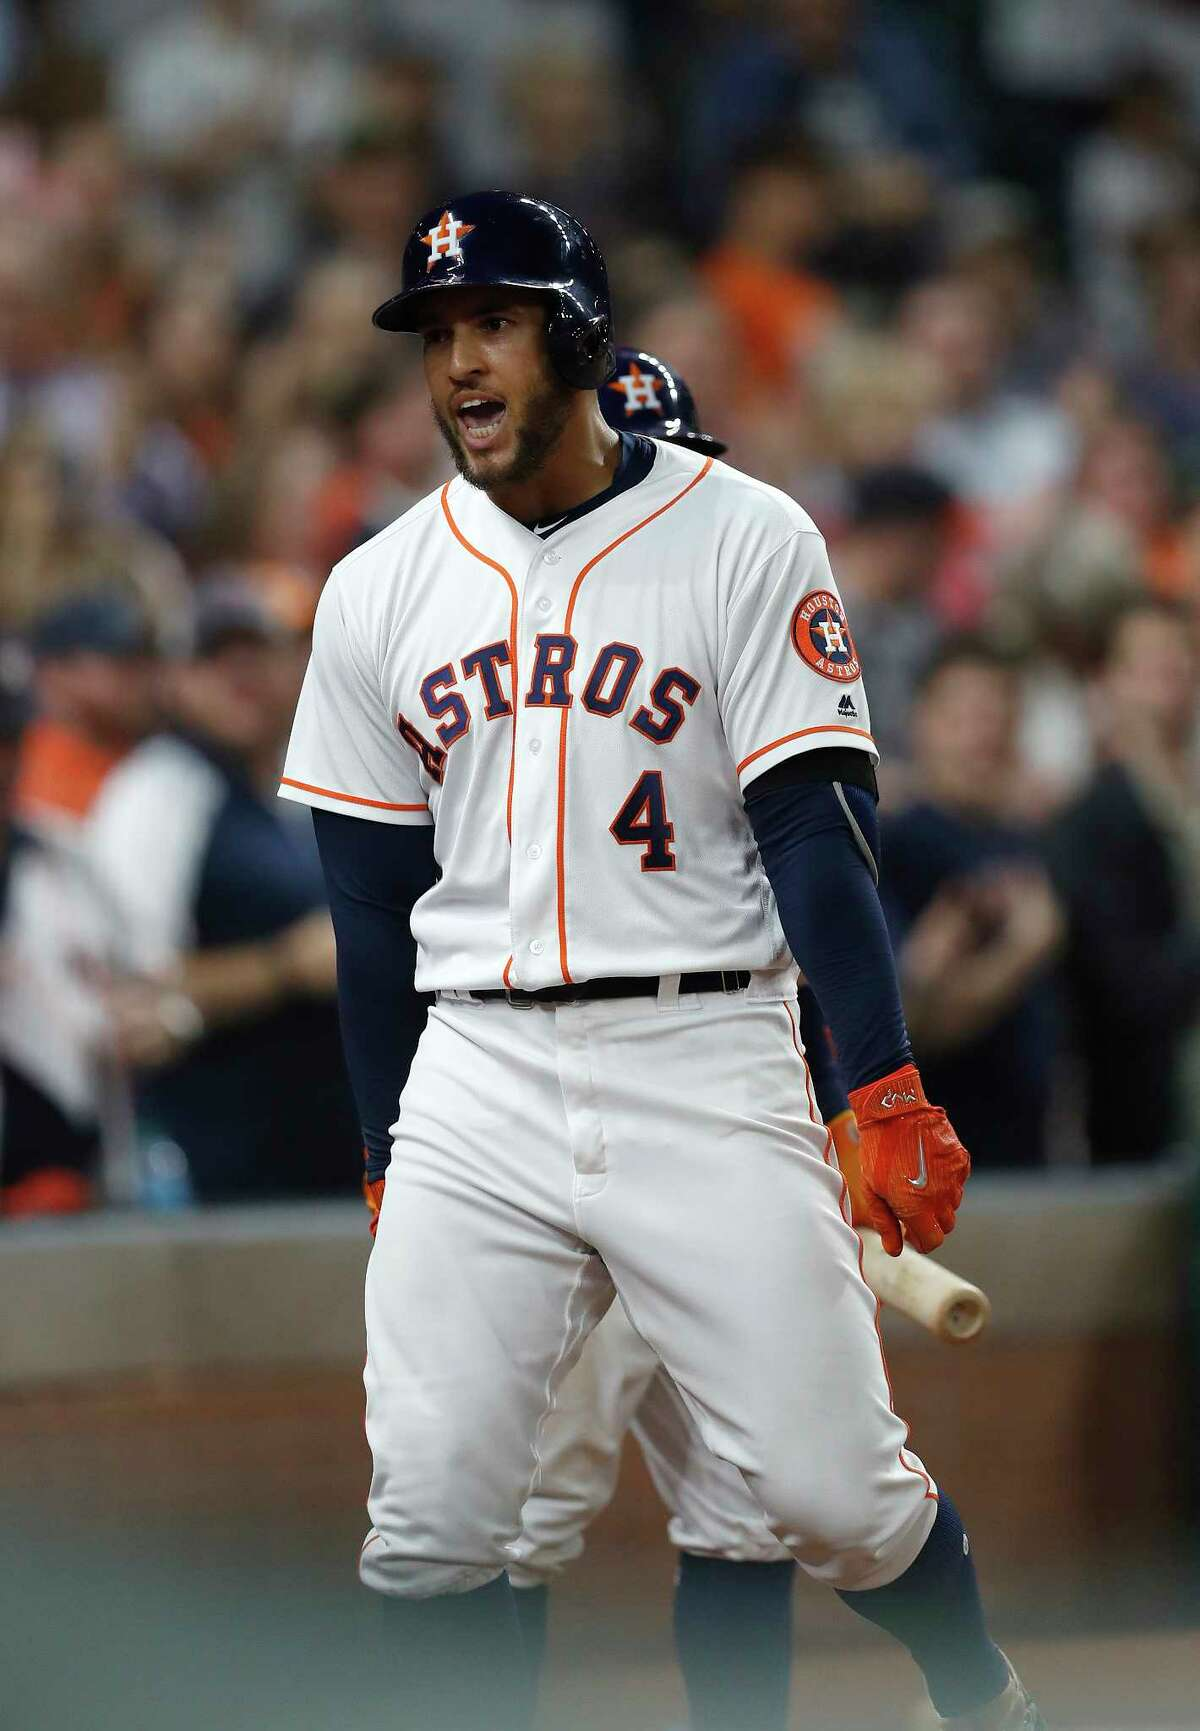 Houston Astros center fielder George Springer (4) celebrates his home run during the third inning of an MLB baseball game at Minute Maid Park, Tuesday, April 18, 2017, in Houston.